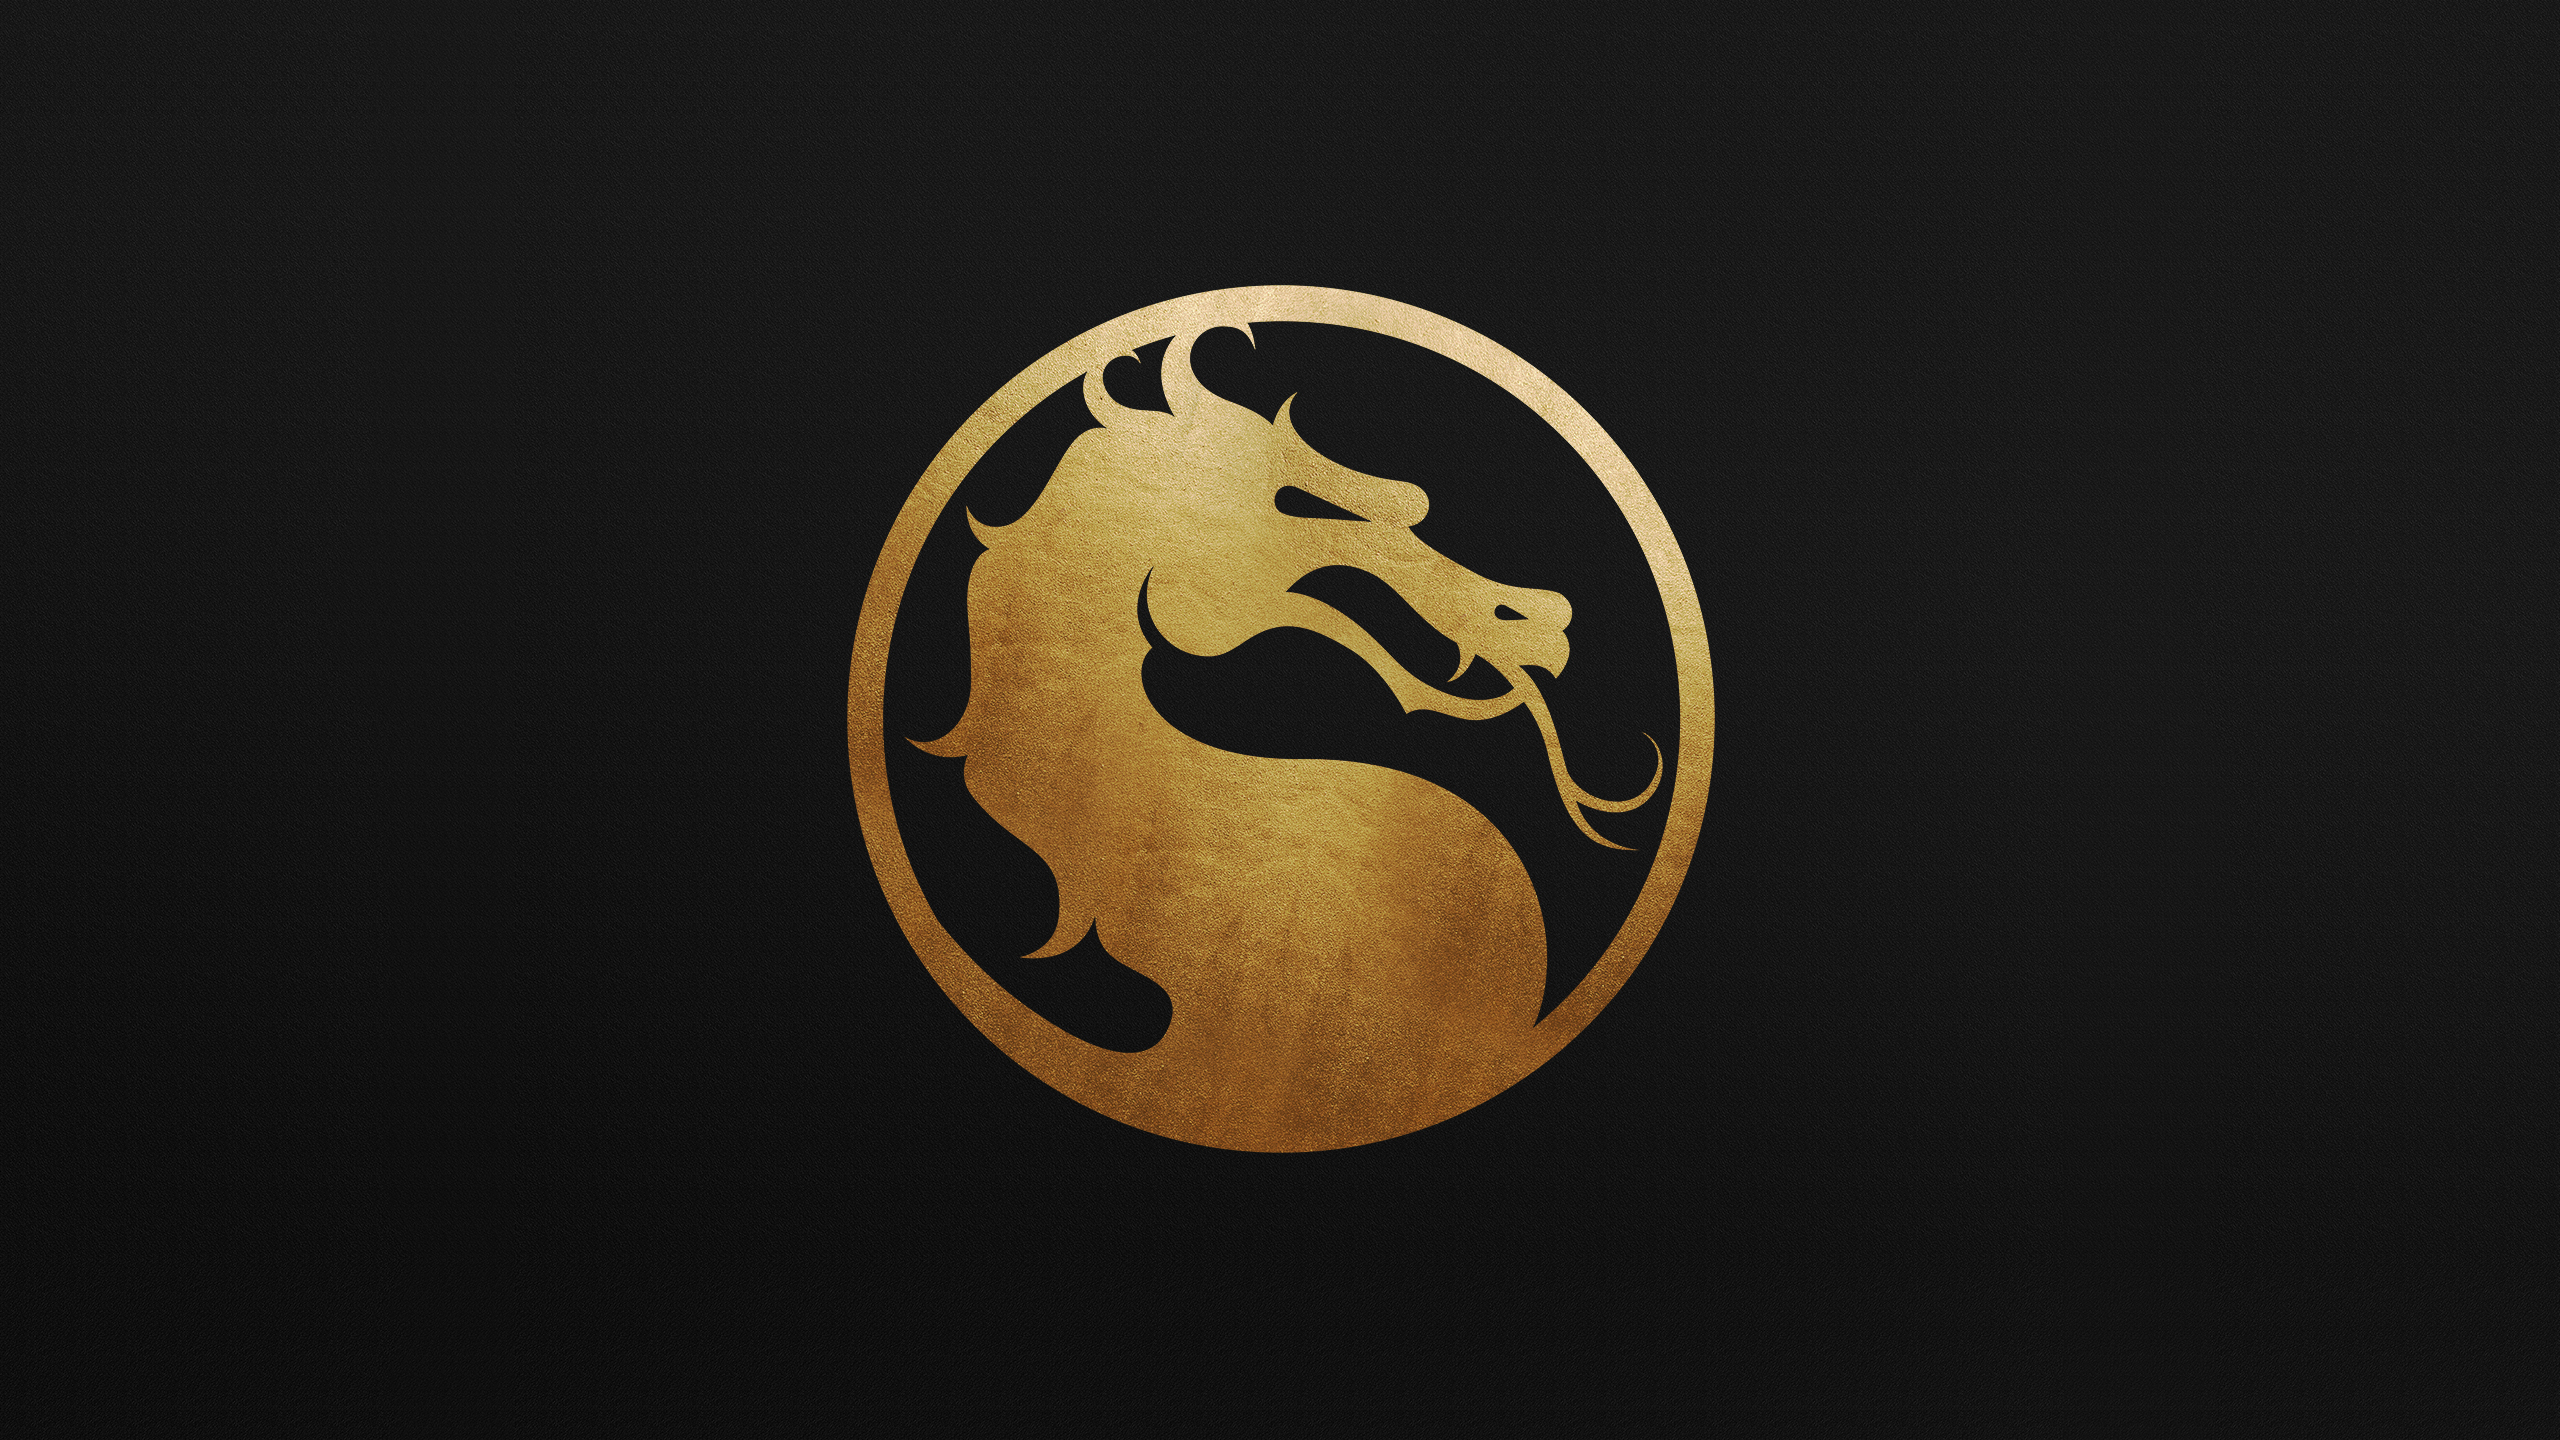 1920x1080 Mortal Kombat 11 Logo 1080p Laptop Full Hd Wallpaper Hd